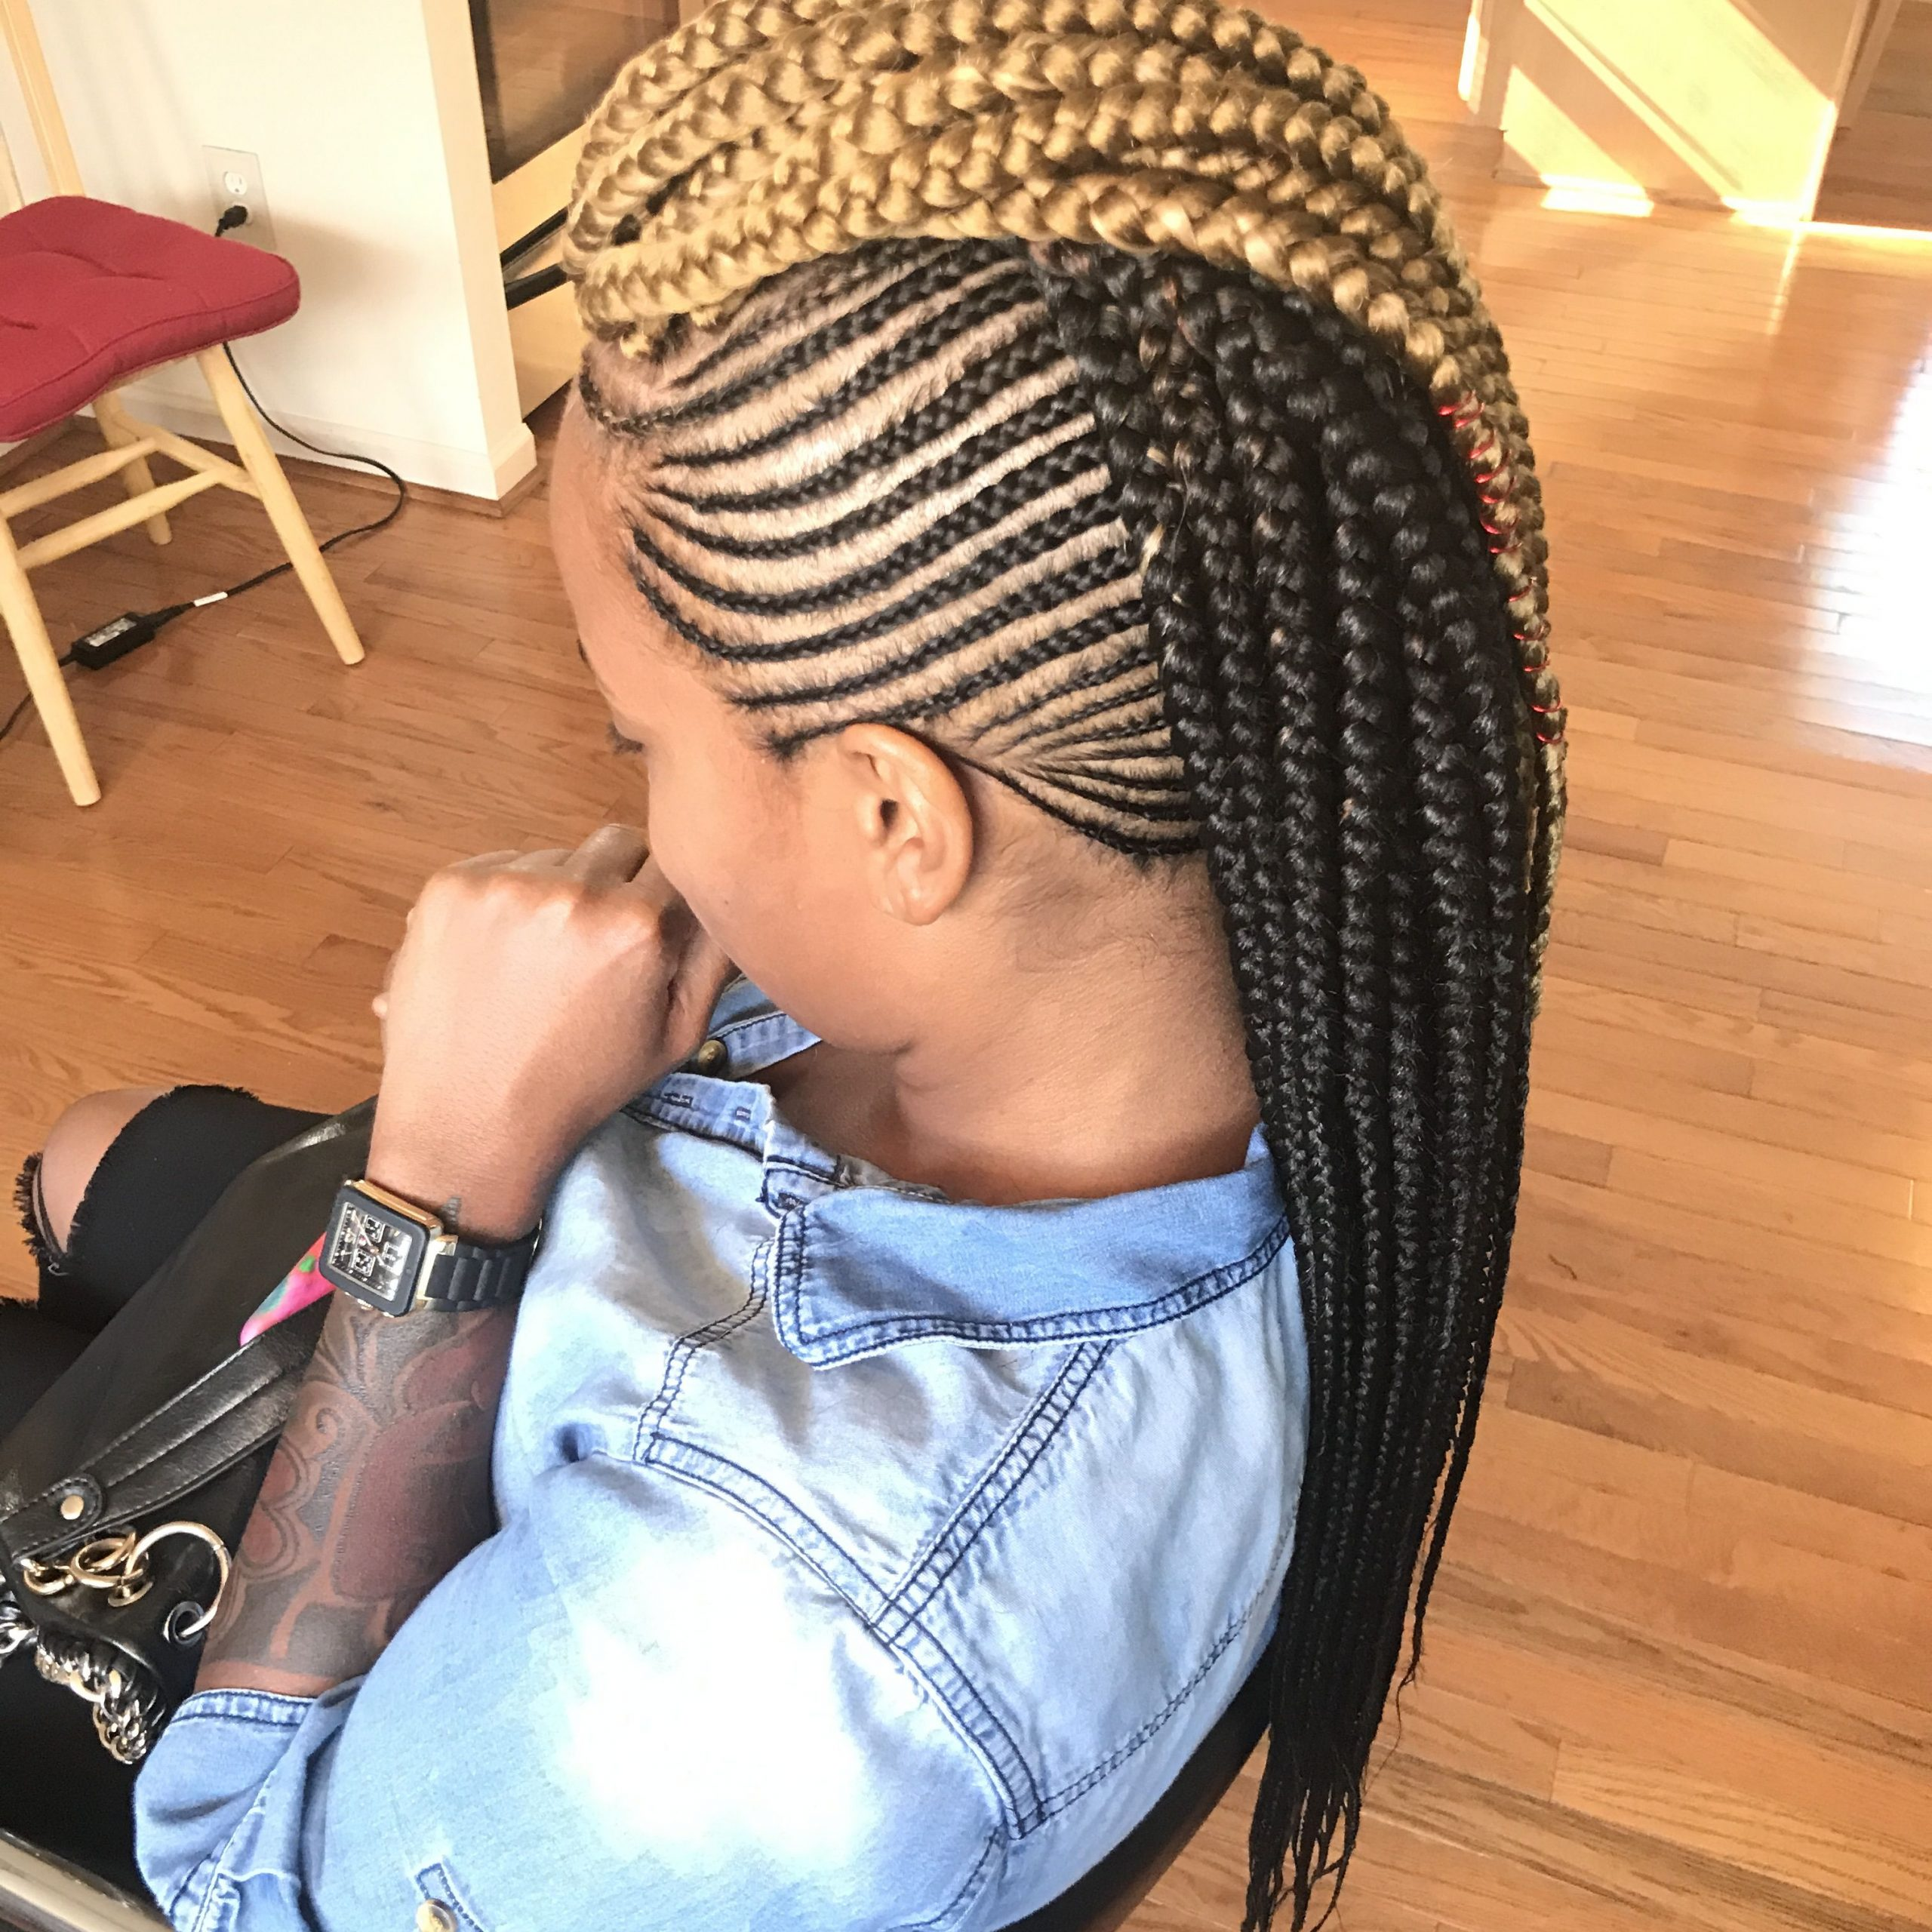 Well Known Pouf Braided Mohawk Hairstyles In Black Mohawk Hairstyles With Braids (View 13 of 20)